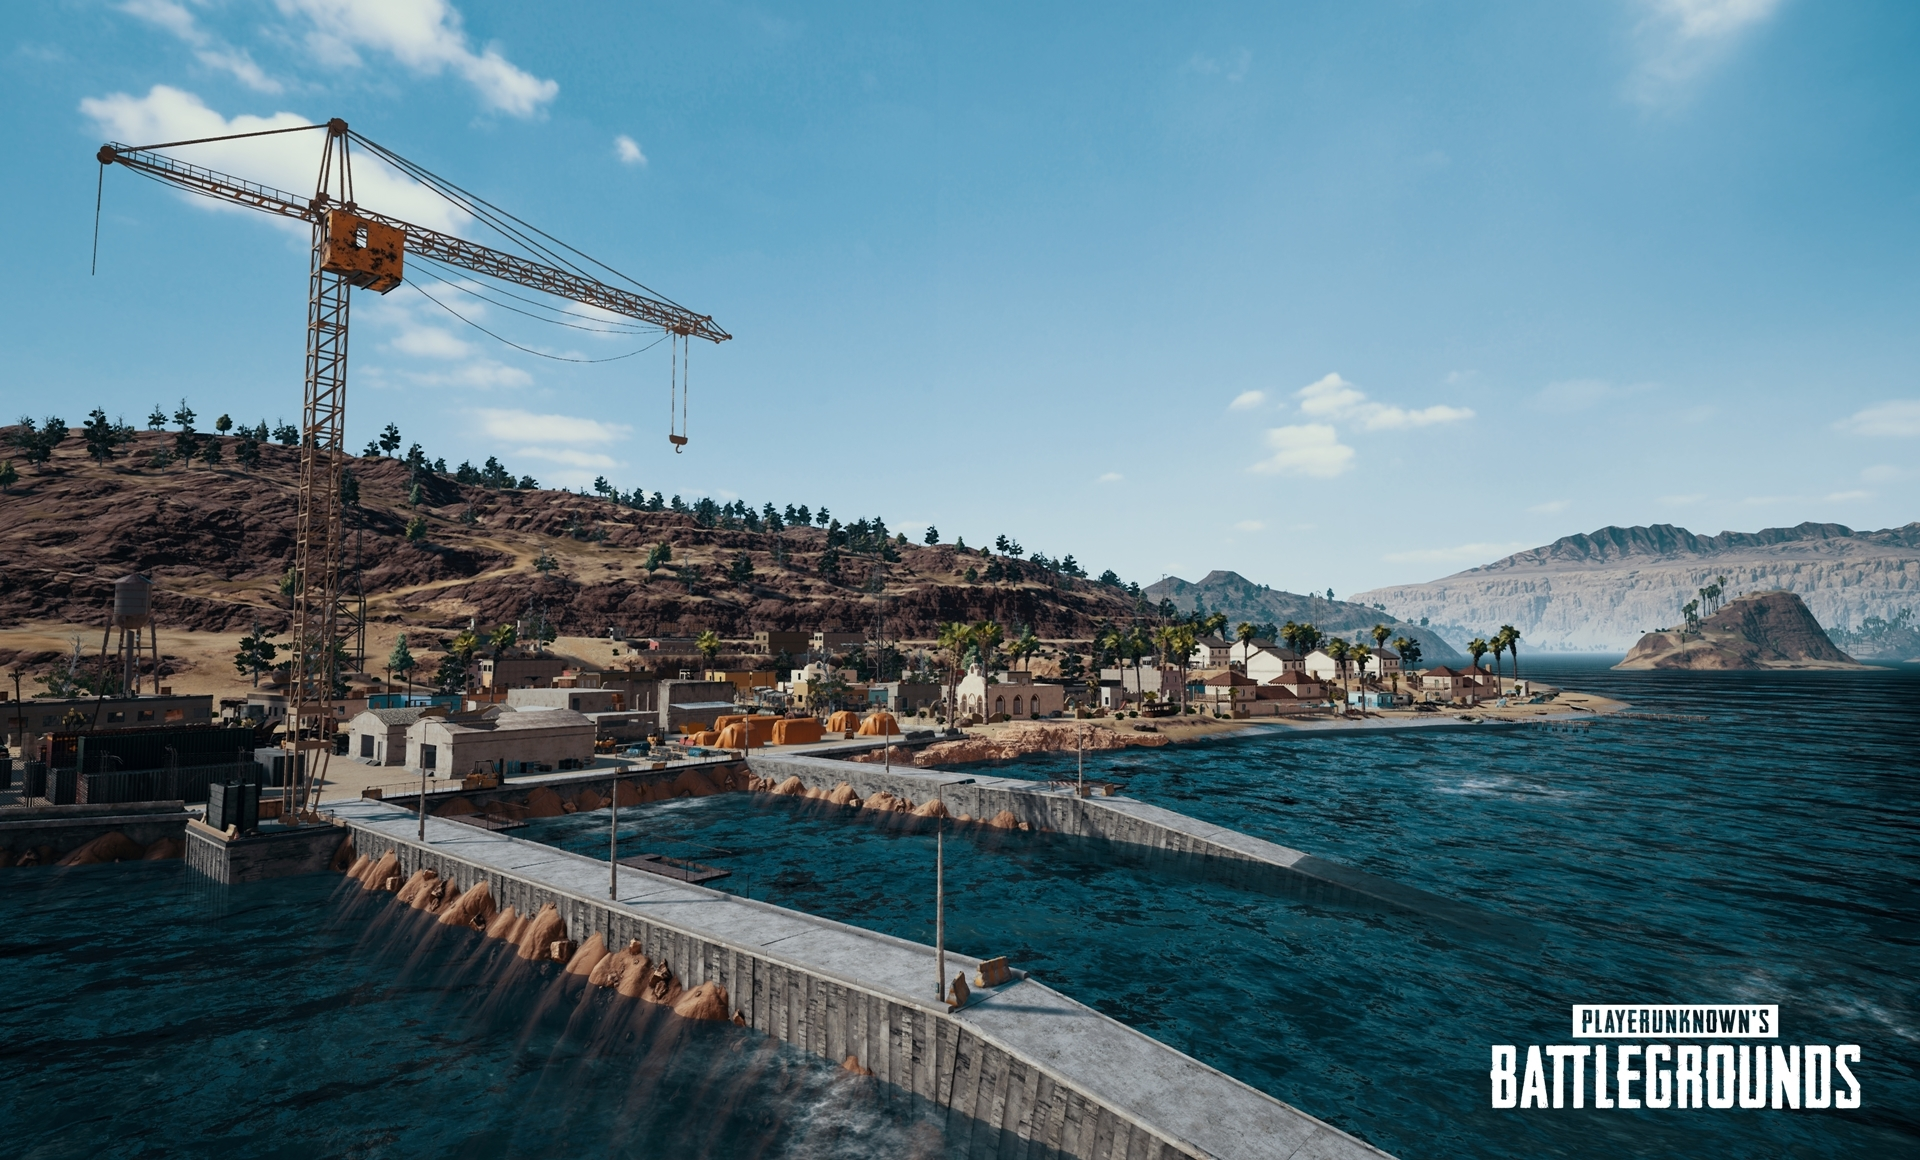 PlayerUnknown's Battlegrounds review: PUBG for you and me